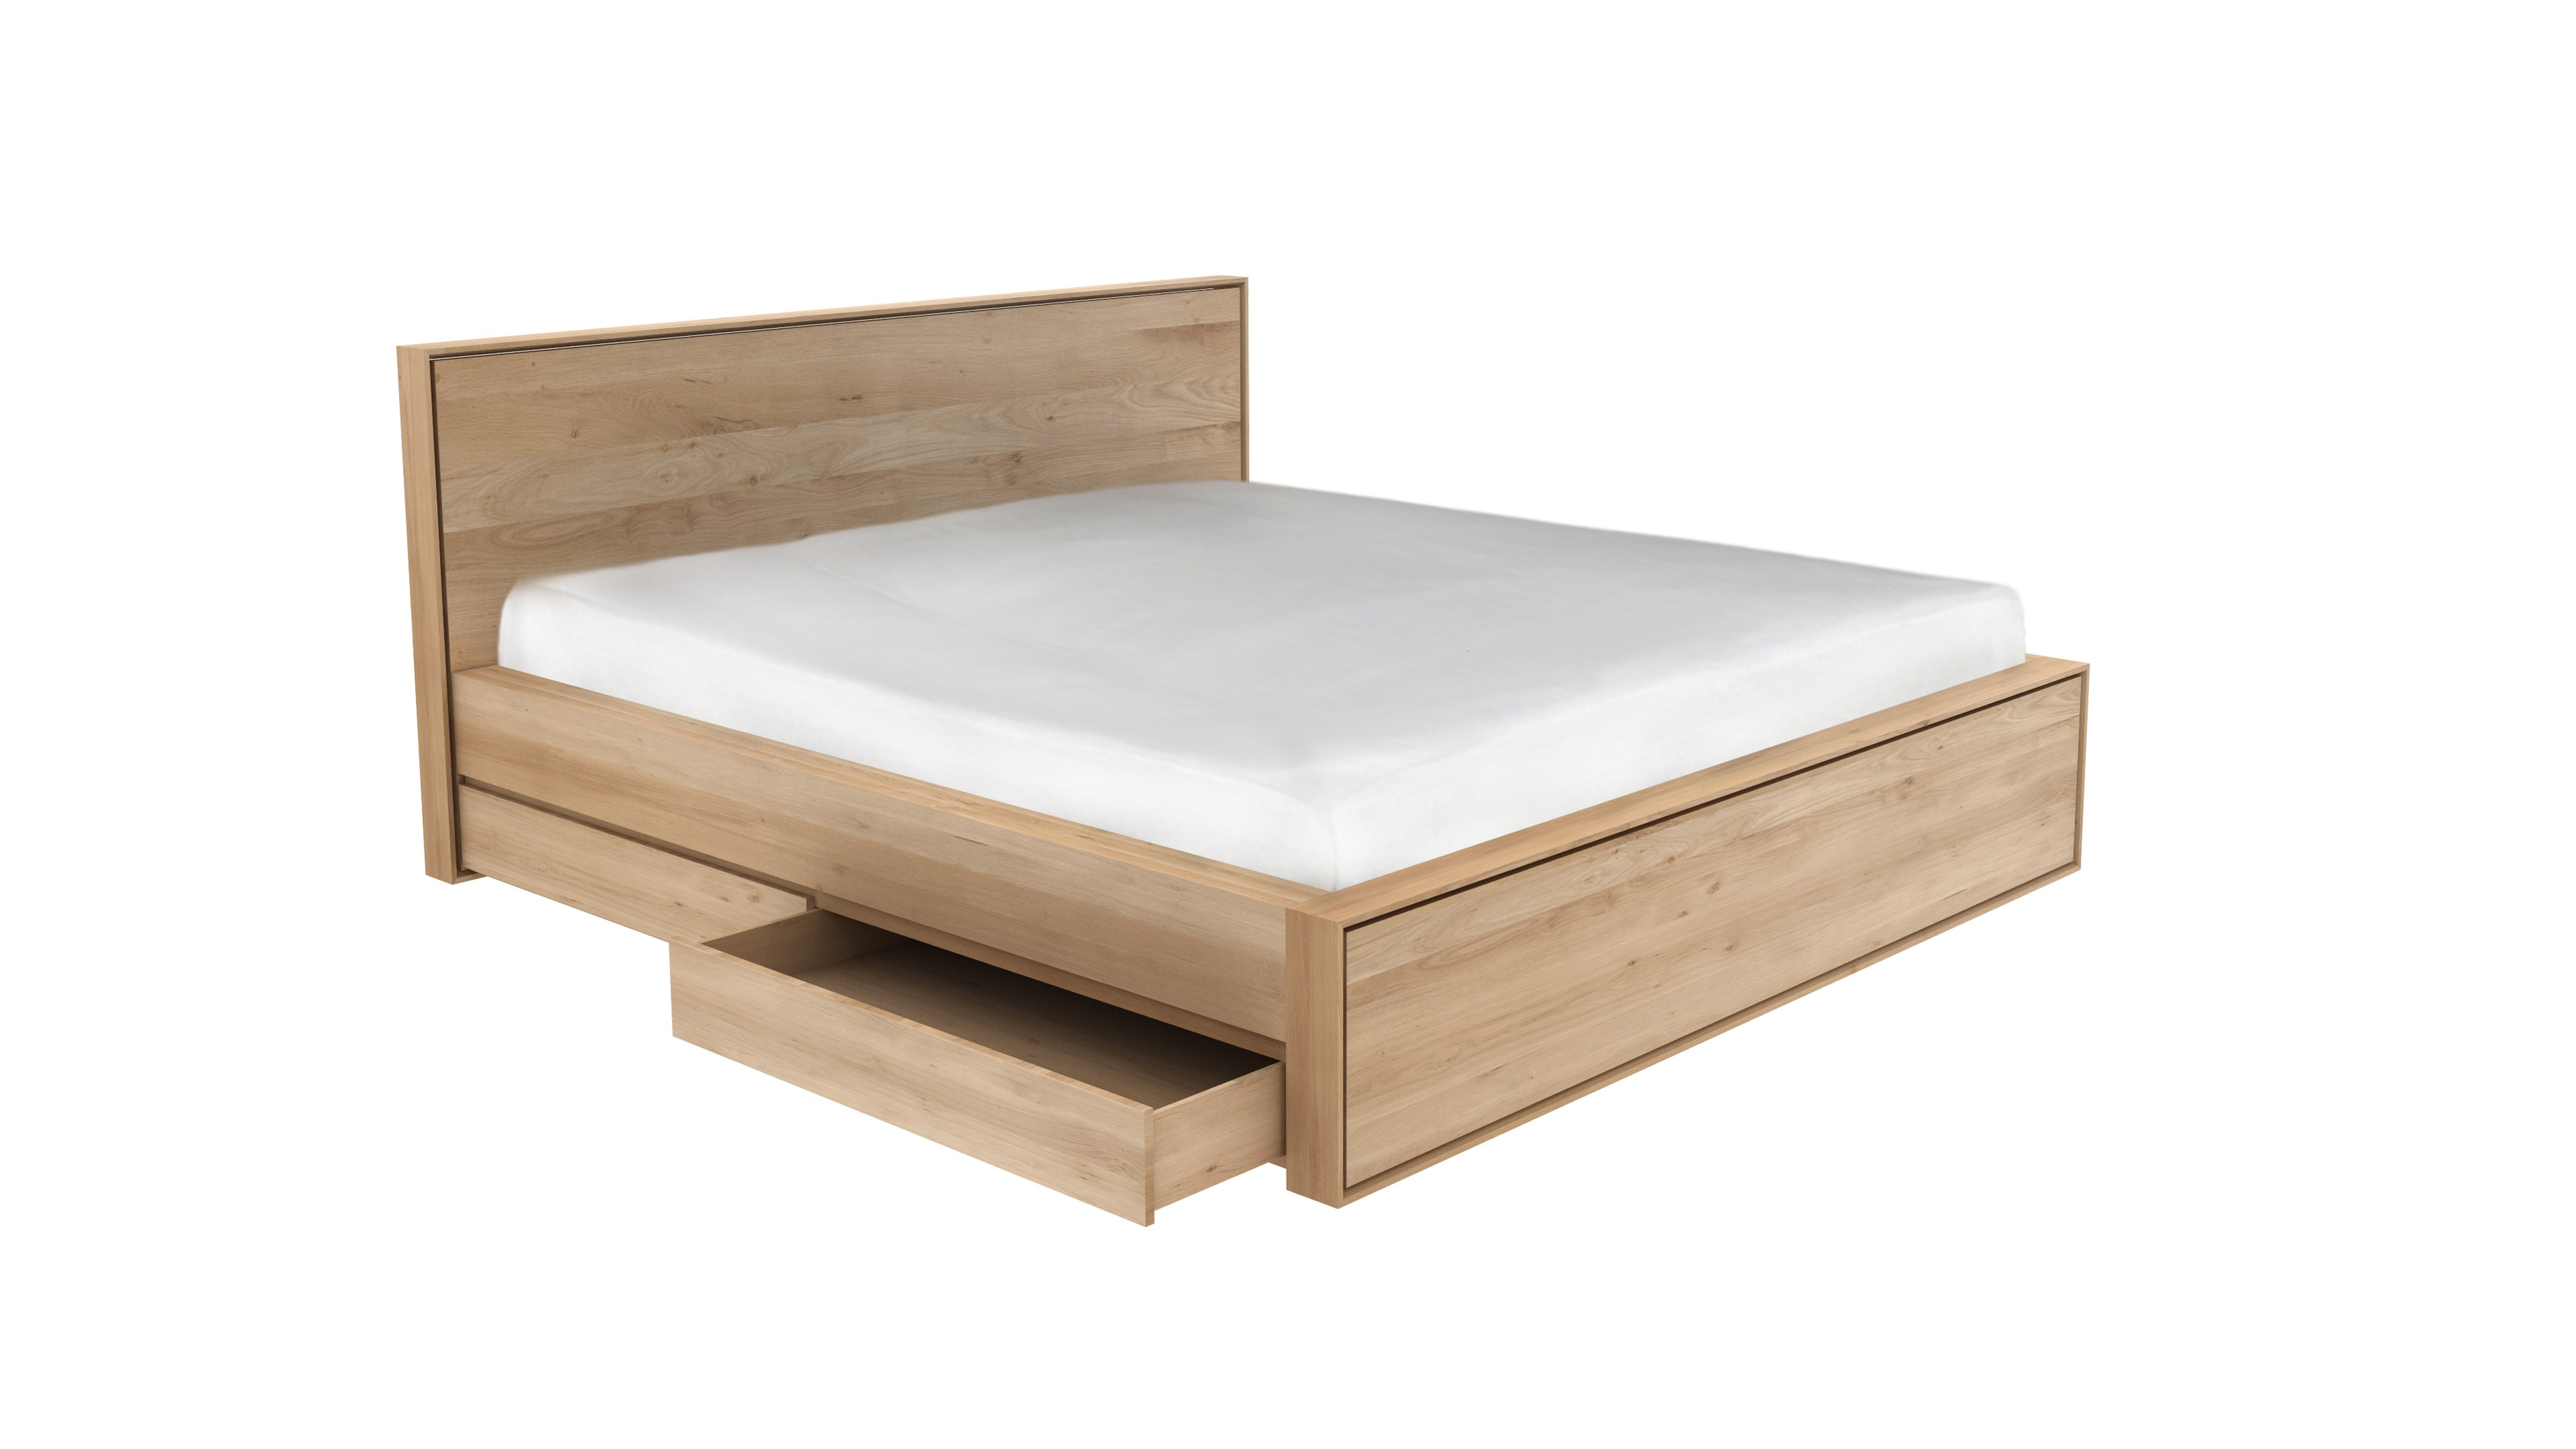 Oak nordic ii bett mit bettkasten kollektion oak nordic by ethnicraft